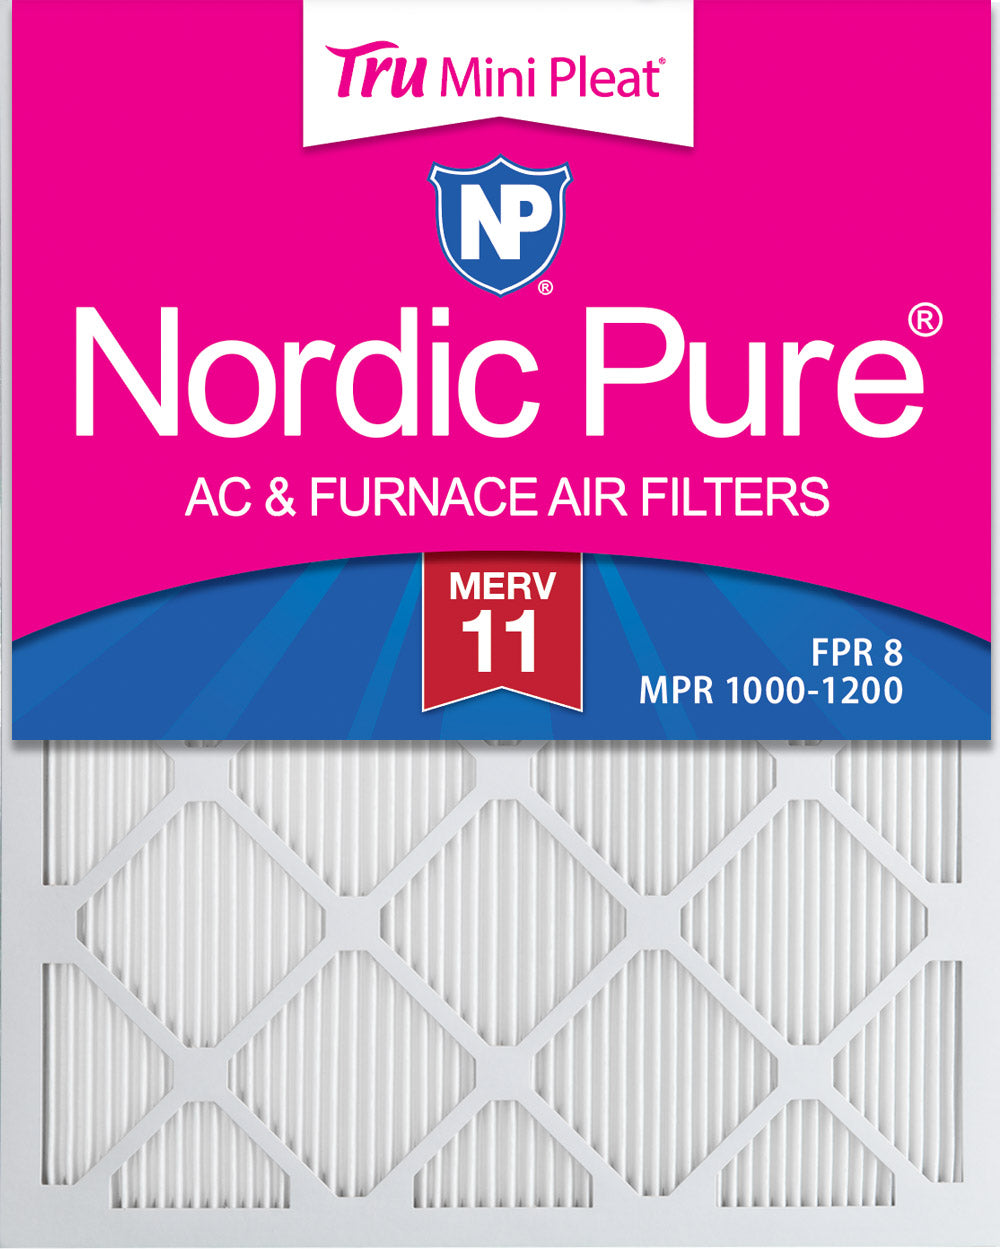 16x20x1 Tru Mini Pleat MERV 11 AC Furnace Air Filters 6 Pack